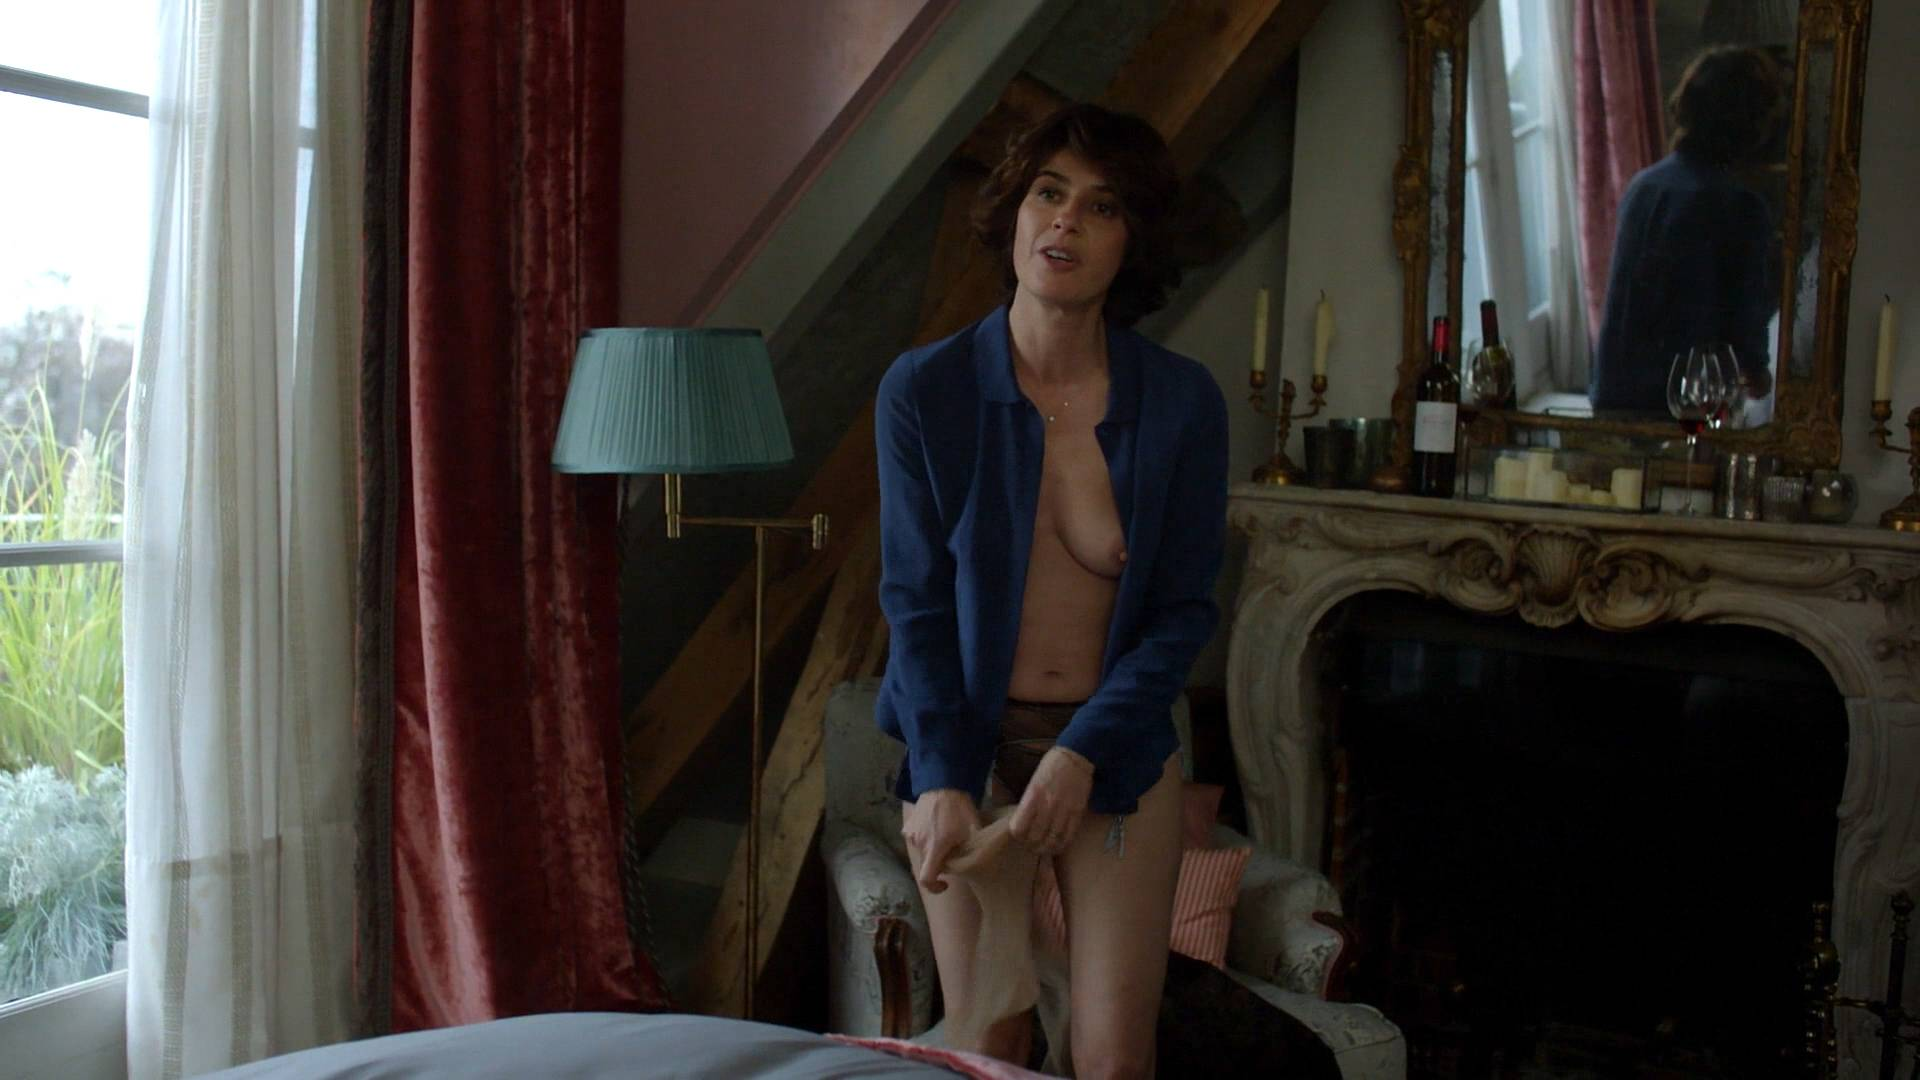 Irene-Jacob-nude-topless-and-butt-The-Affair-2017-s3e10-HD-1080p.-7.jpg